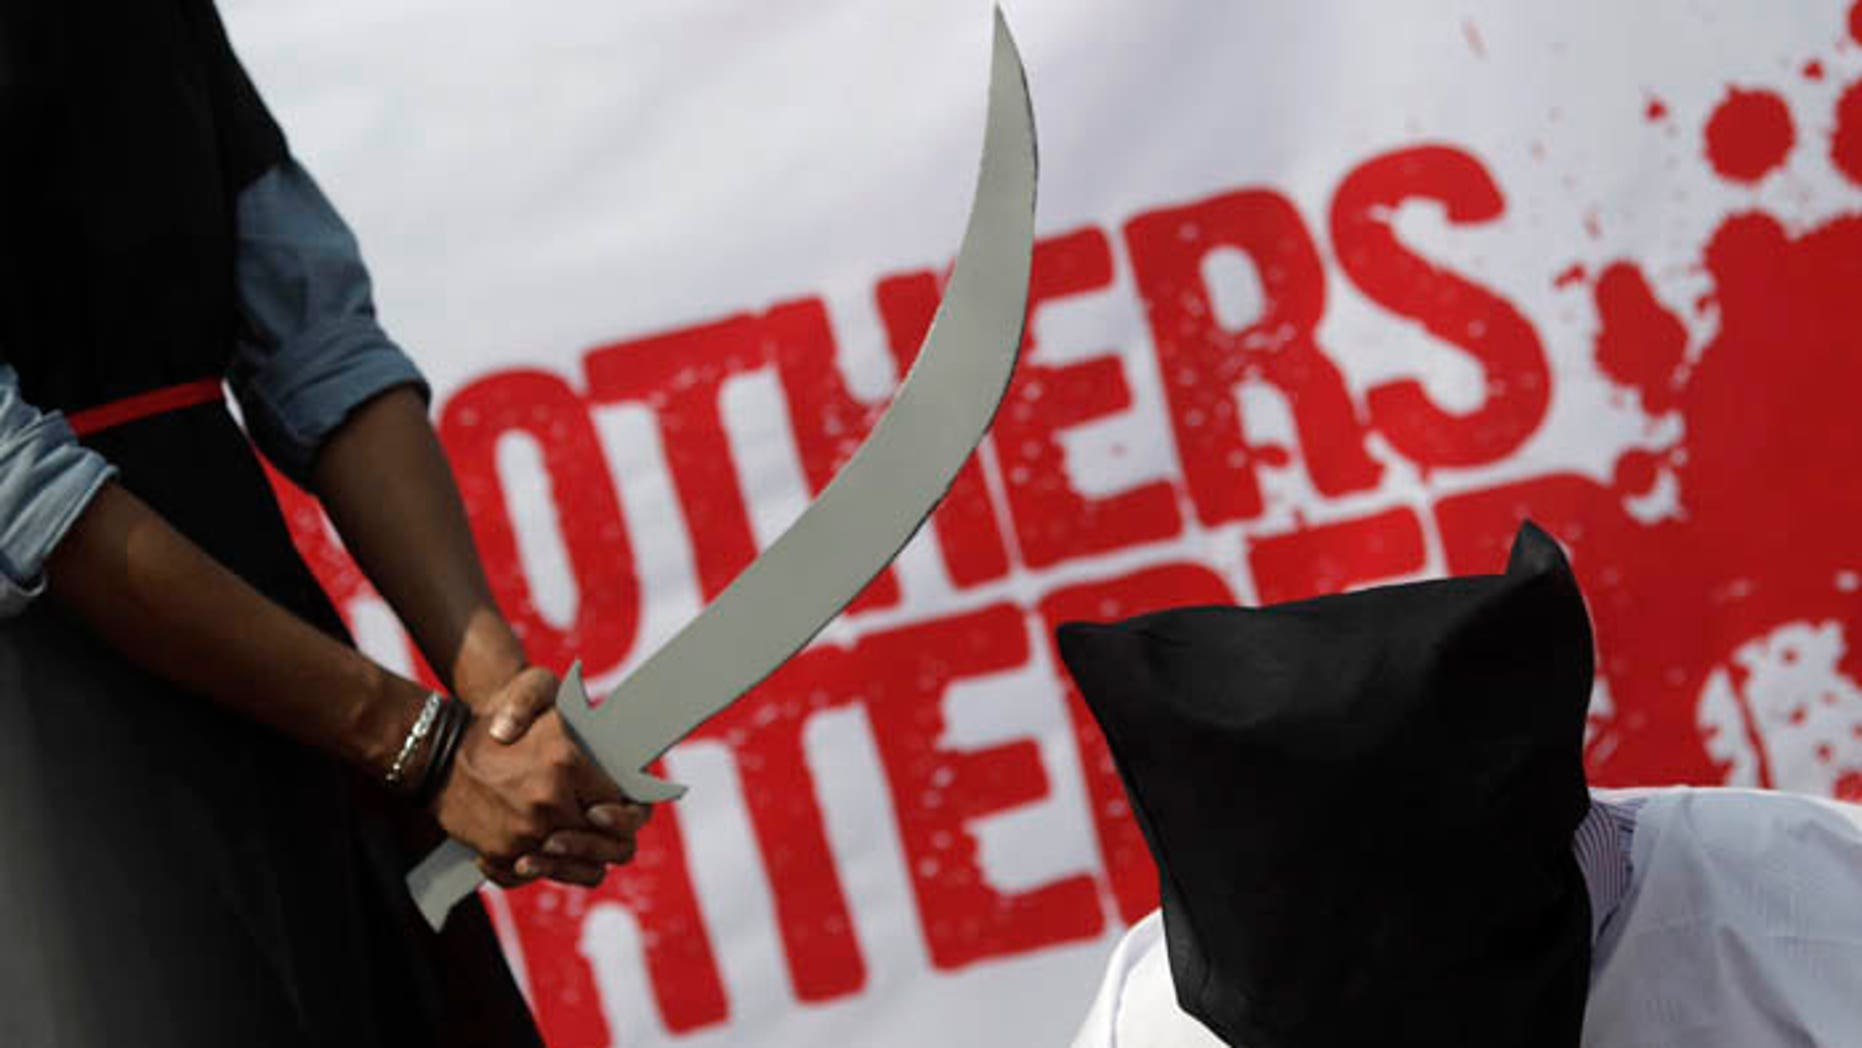 Saudi Arabia can't find enough people willing to perform the grim task of beheading convicts. (Reuters)